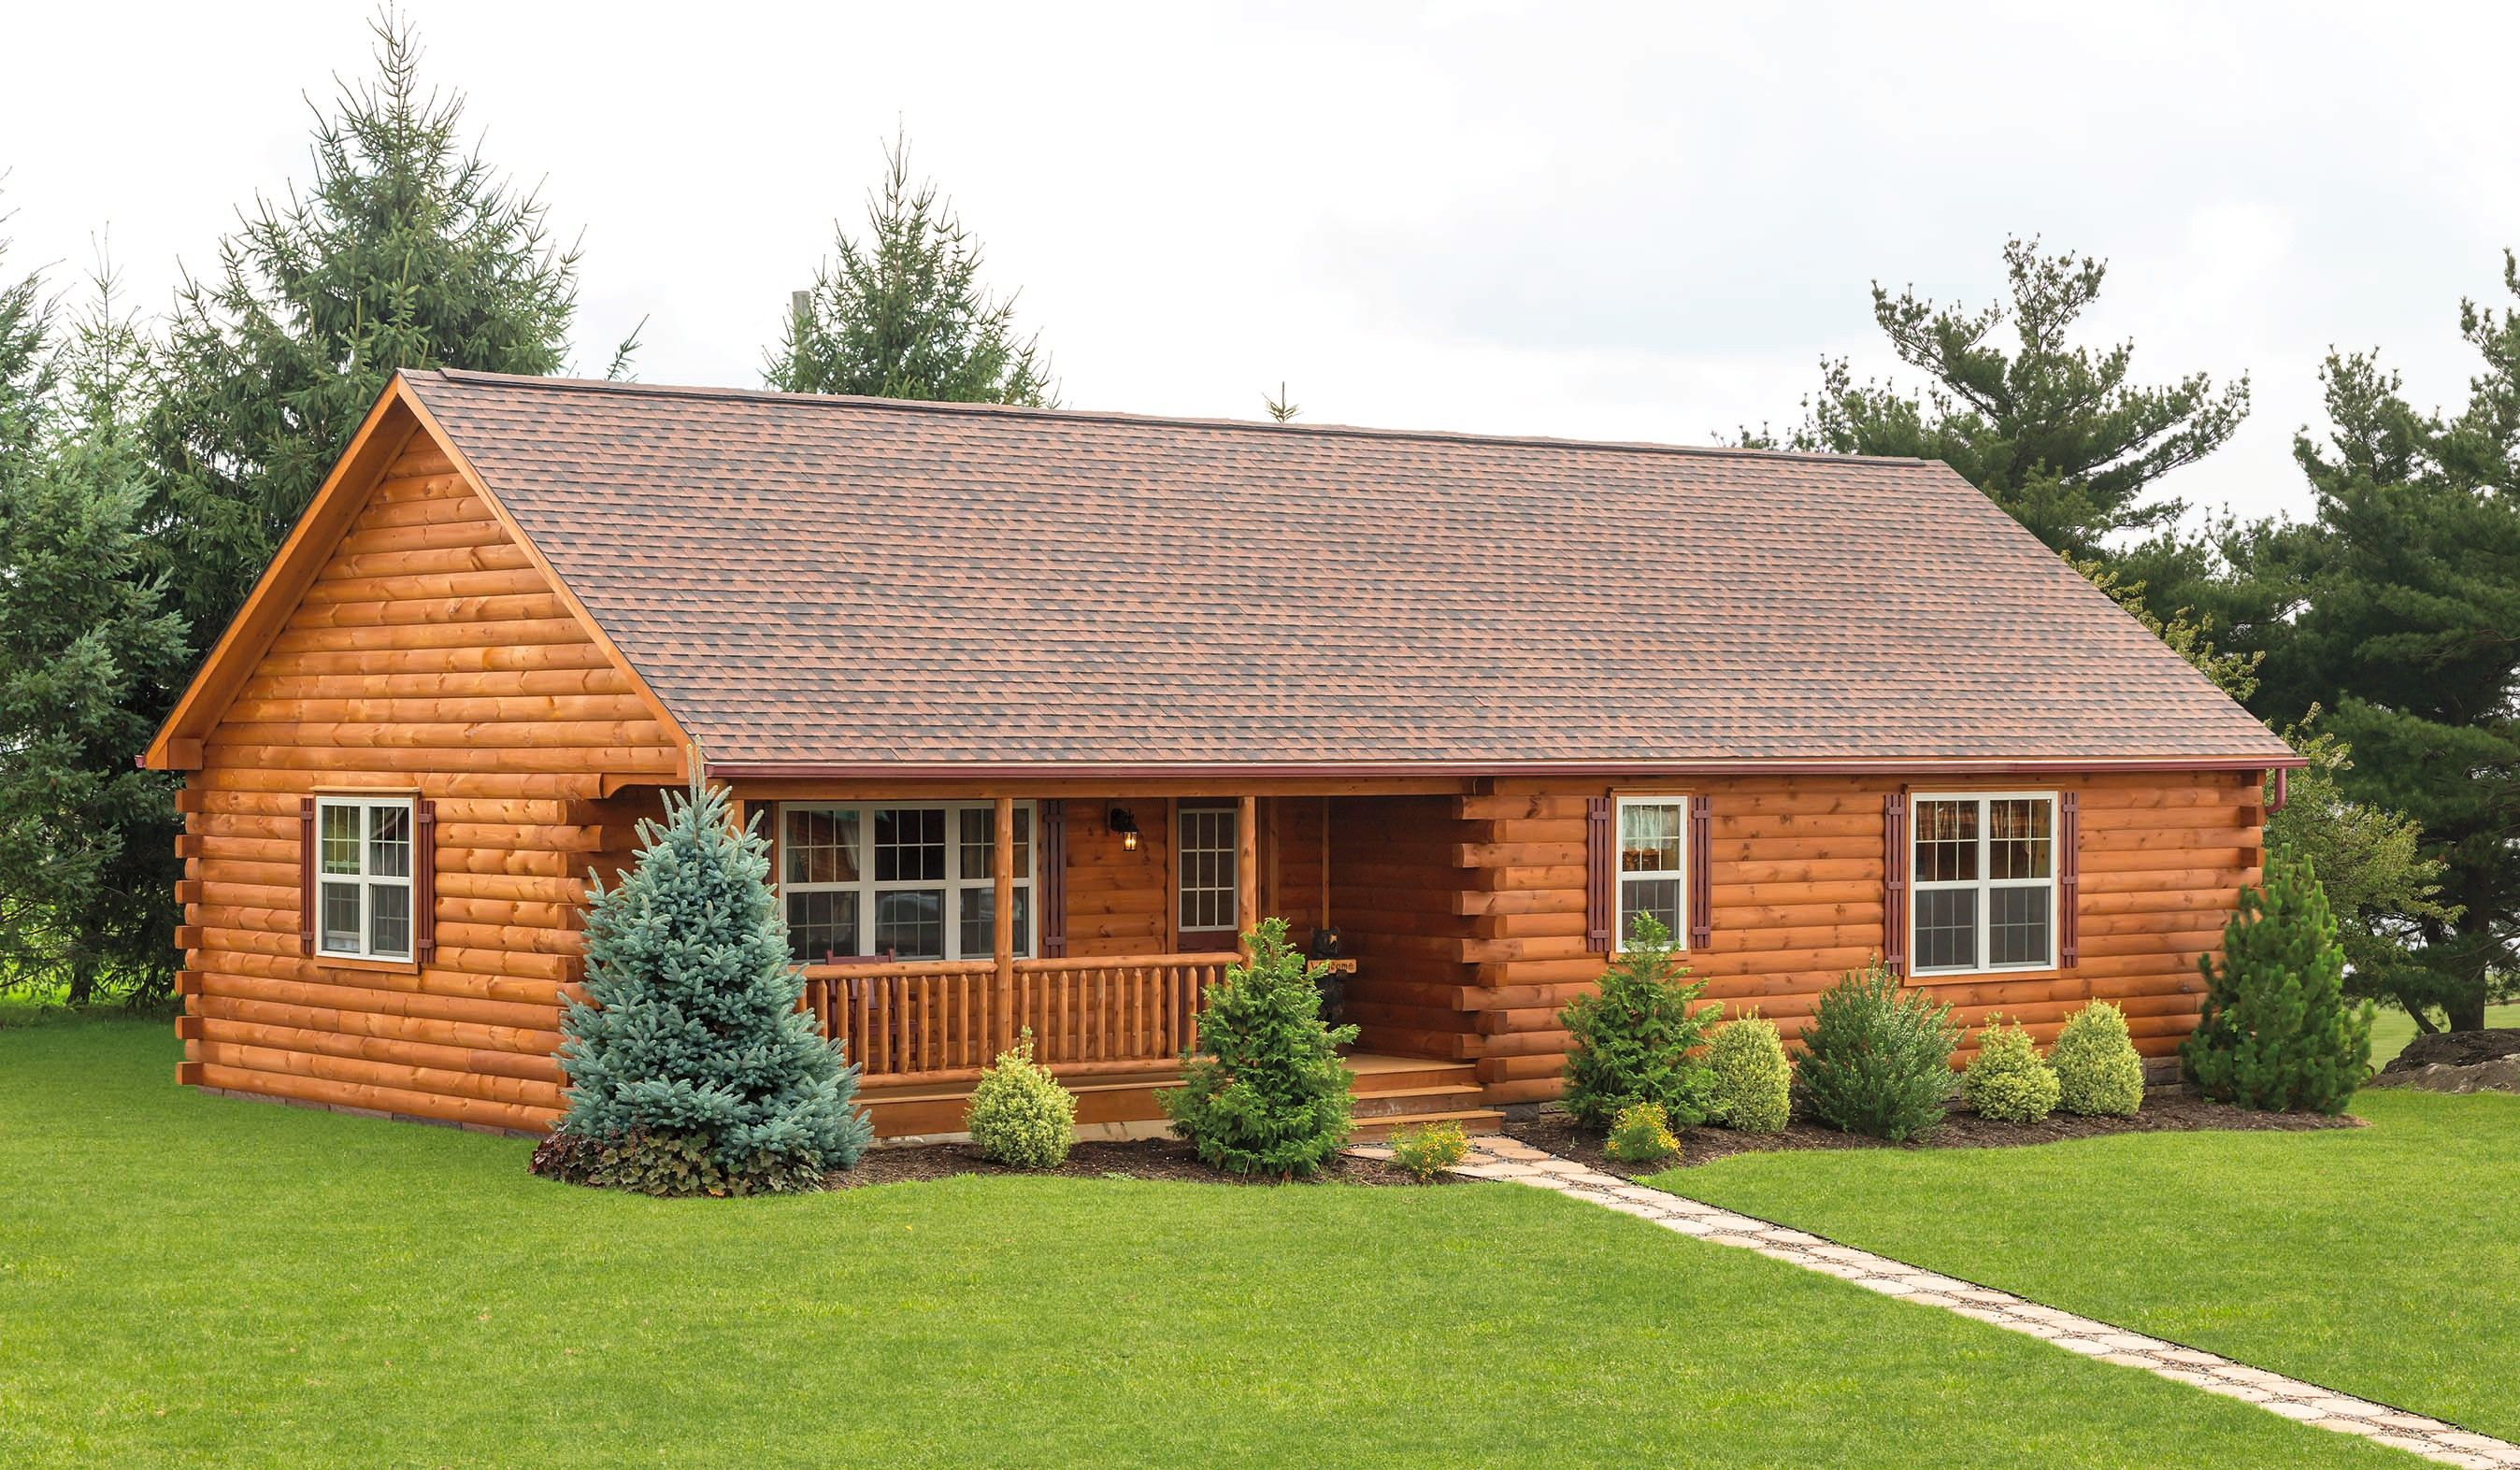 The Frontier Log Cabin Is One Of Our Most Popular Single Story Styles Among Families And Hunters View Our Prefab Log Cabins Log Cabin Plans Log Home Builders